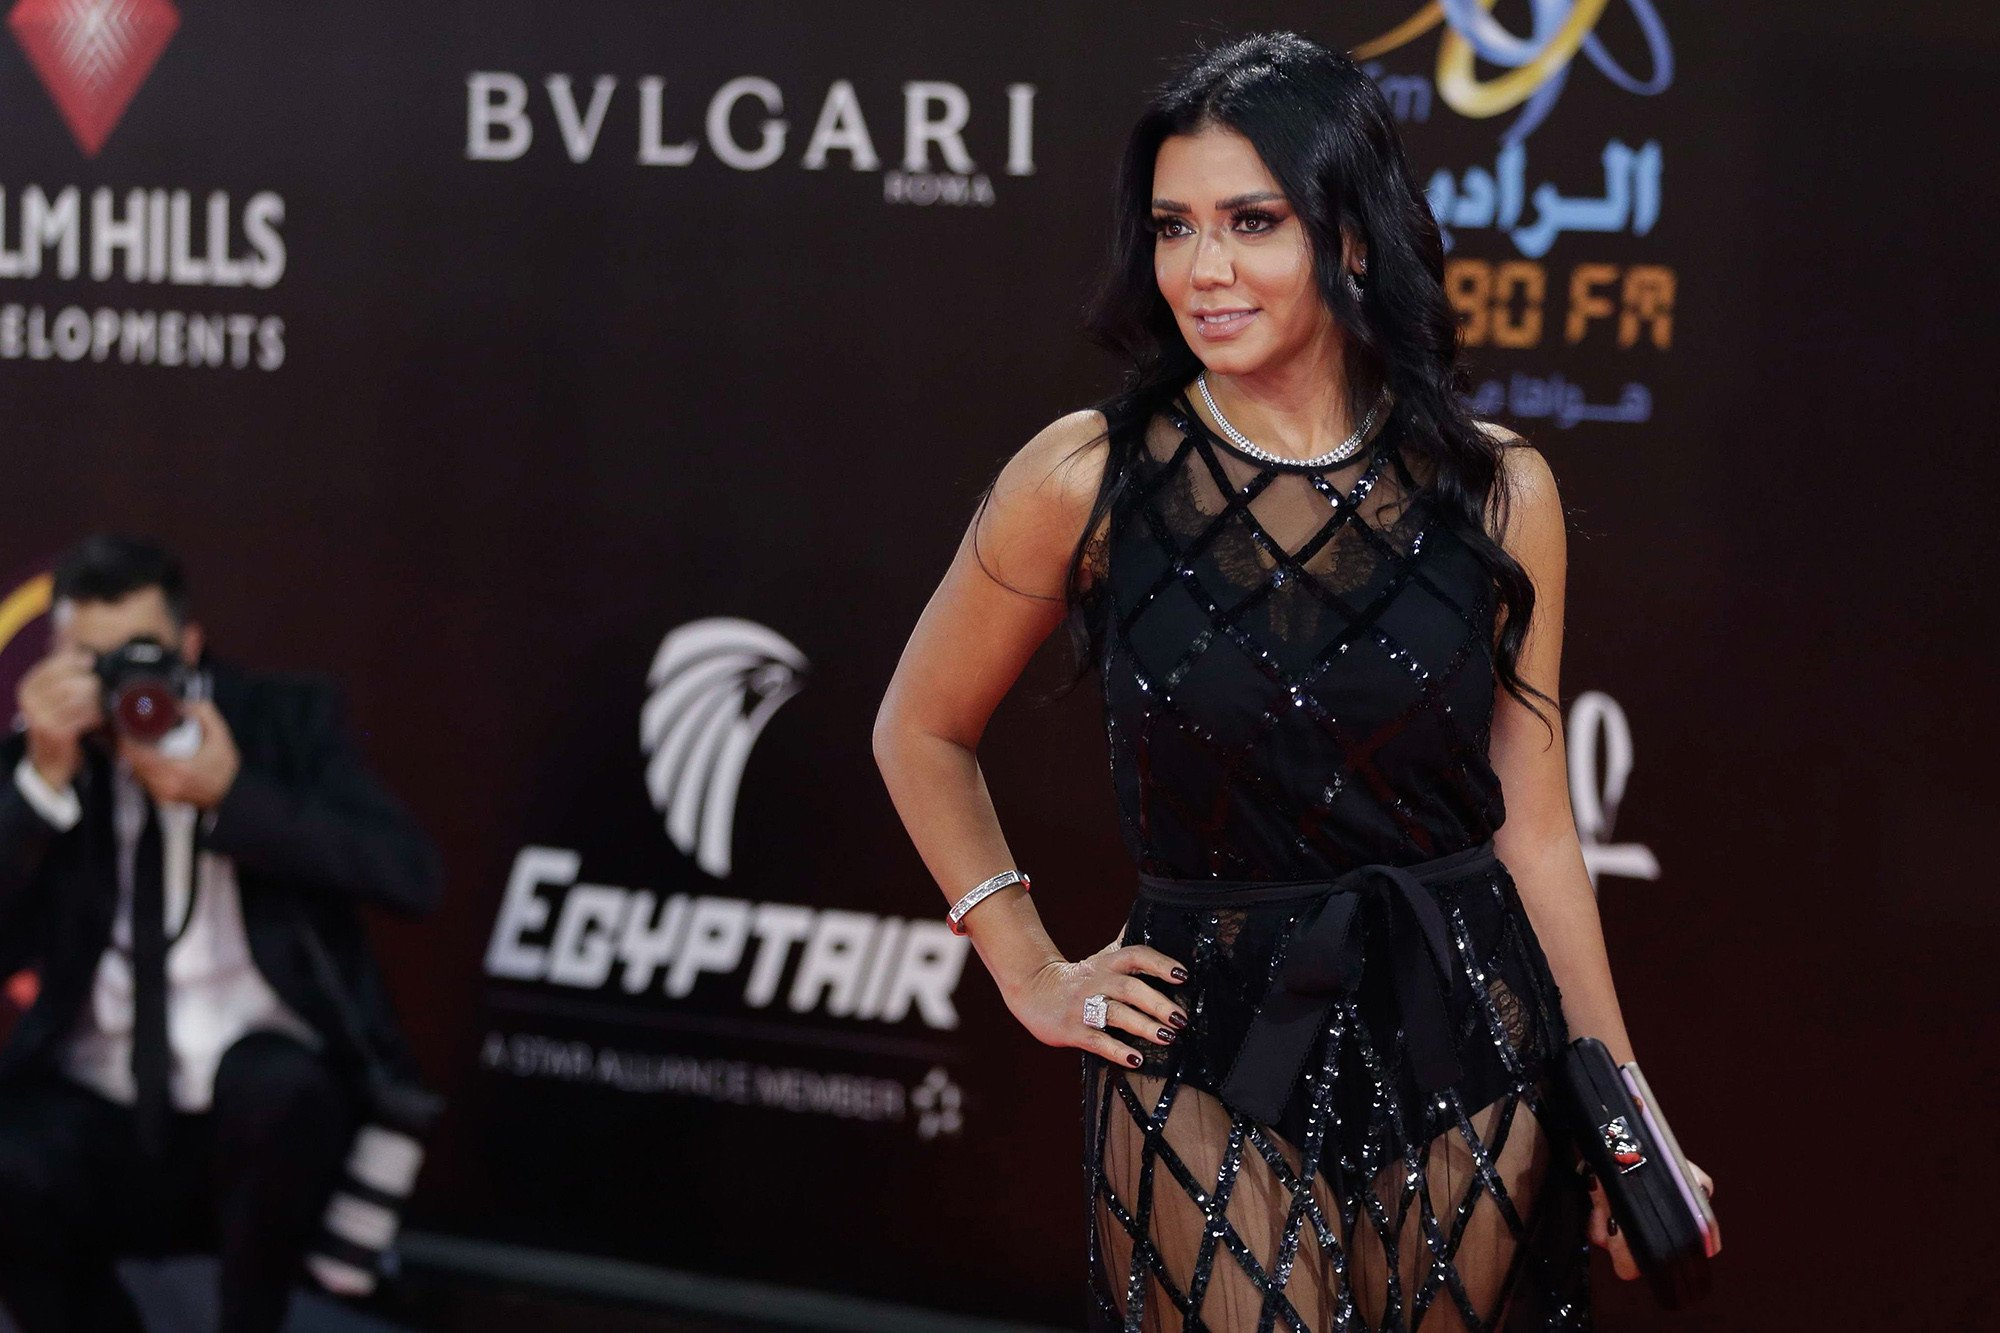 Egyptian actress opens up about dress at center of obscenity trial